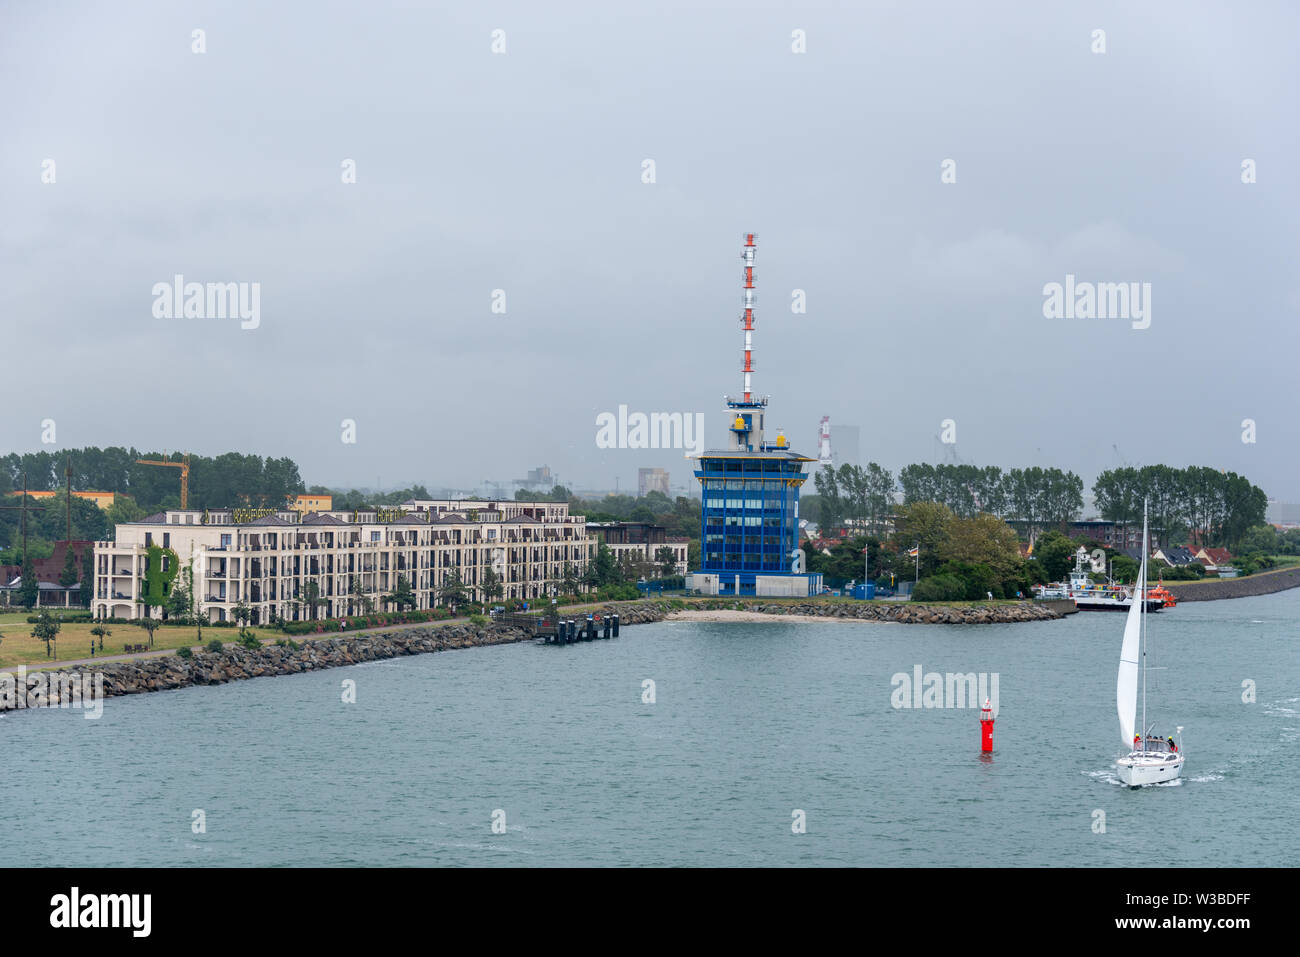 Rostock, Germany - July 7, 2019: View of the marina and the Hotel Hohe Düne in Rostock, Germany. - Stock Image